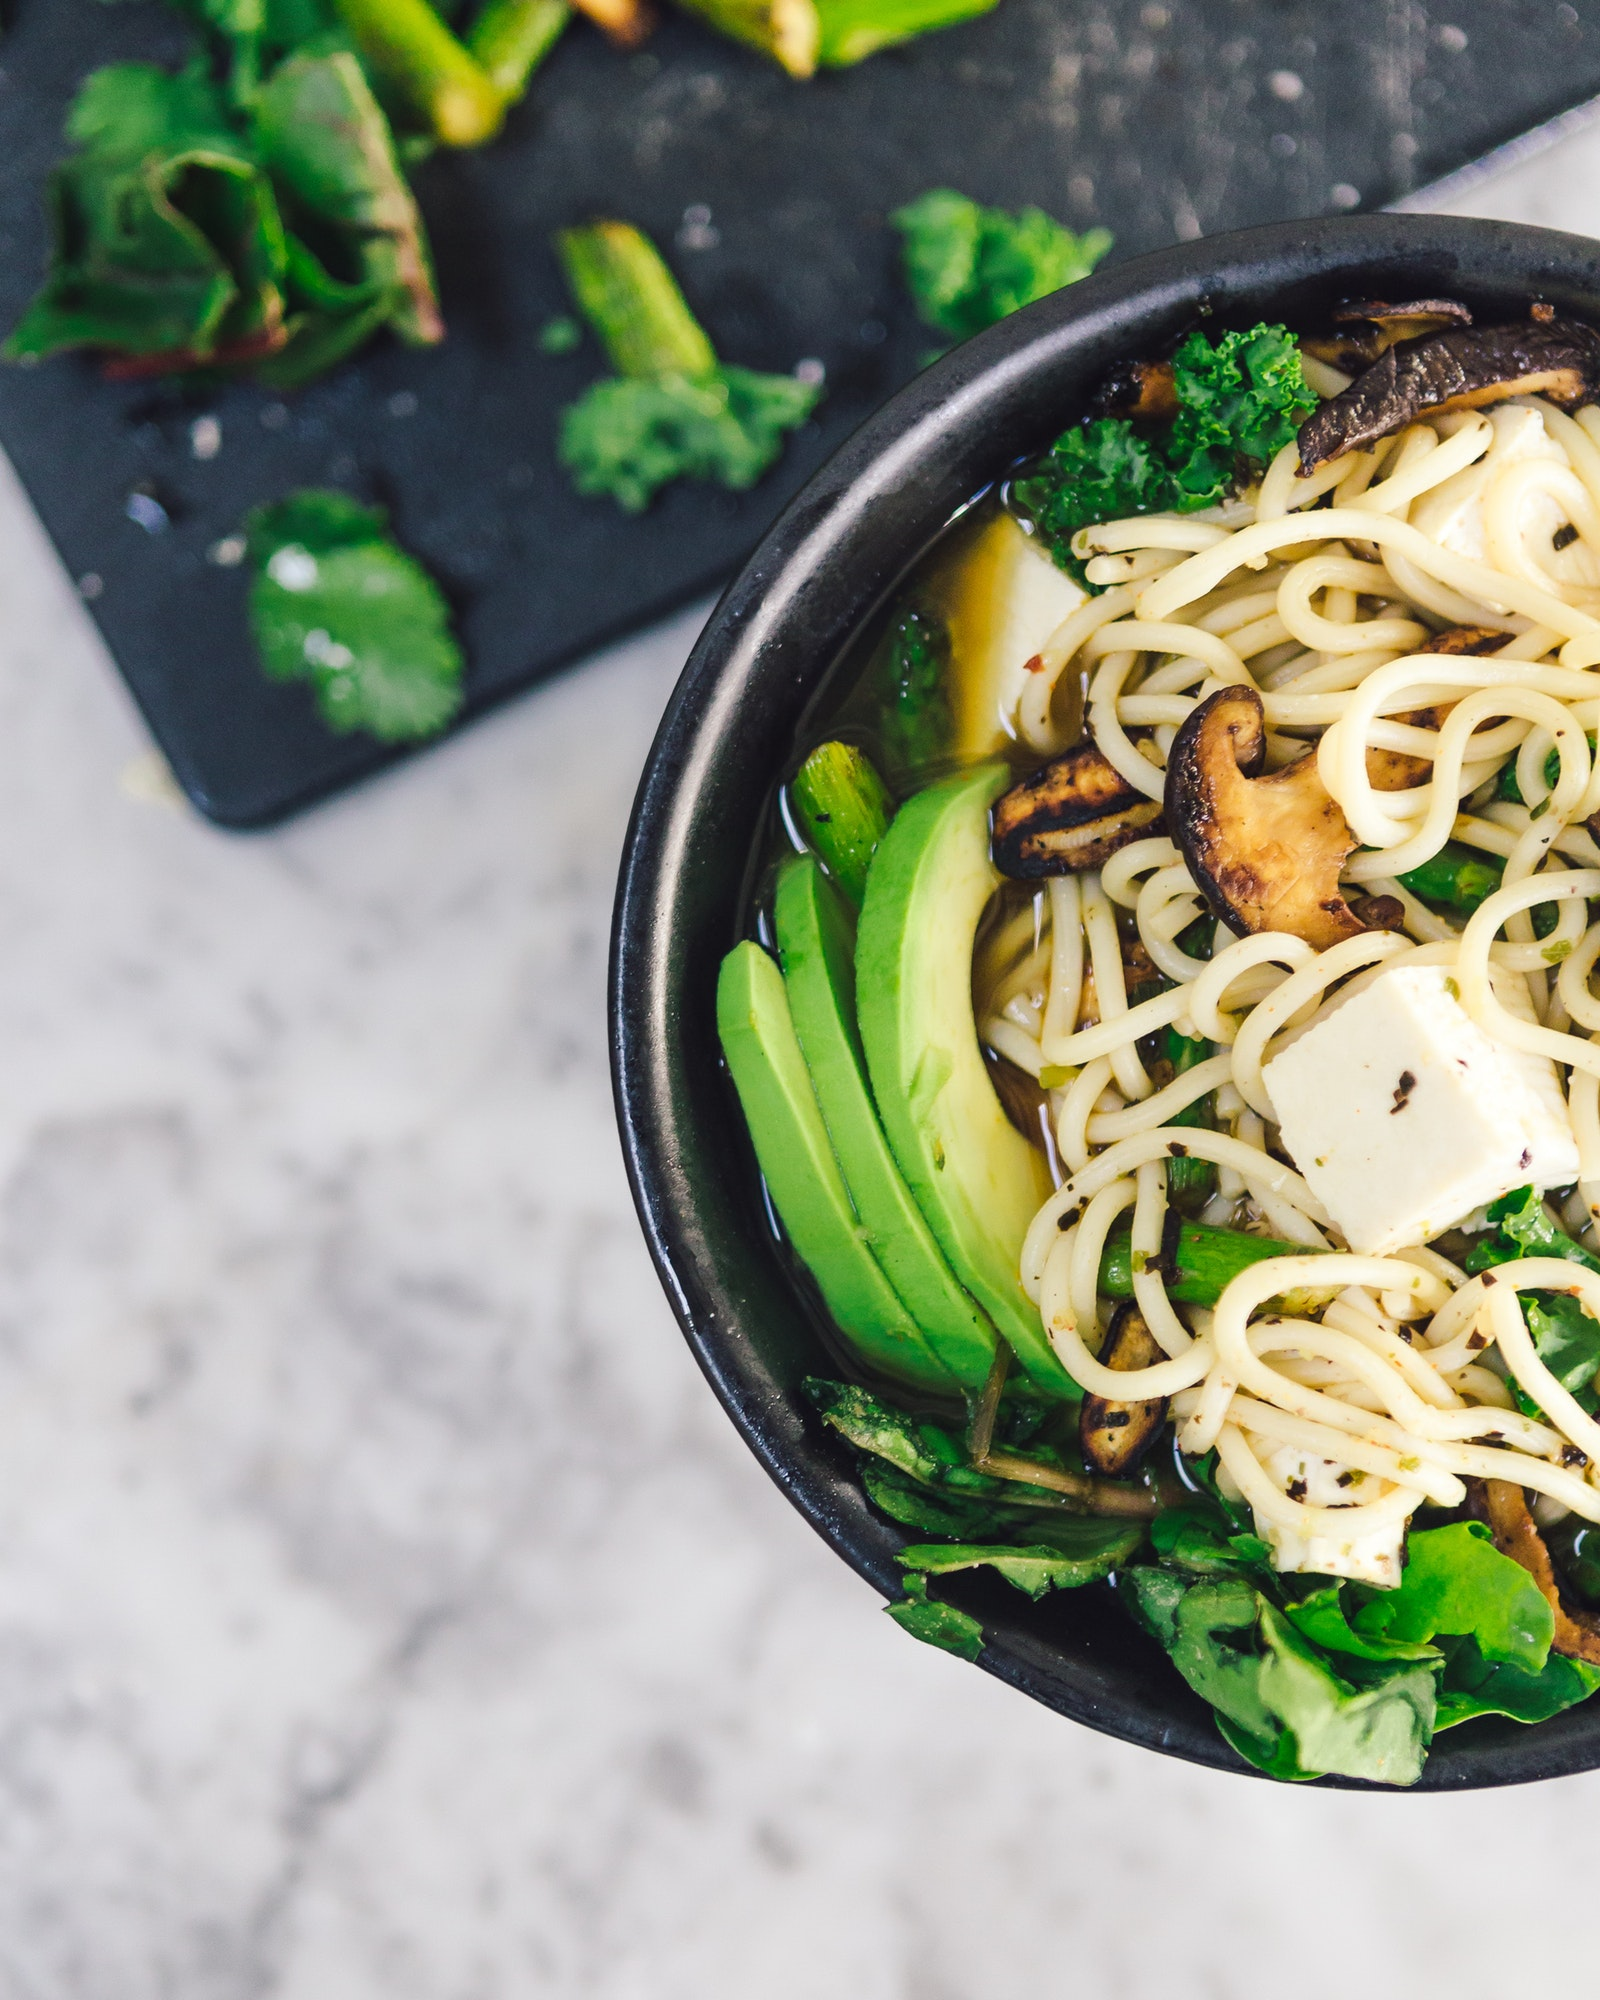 Shirataki Noodles: The zero carb